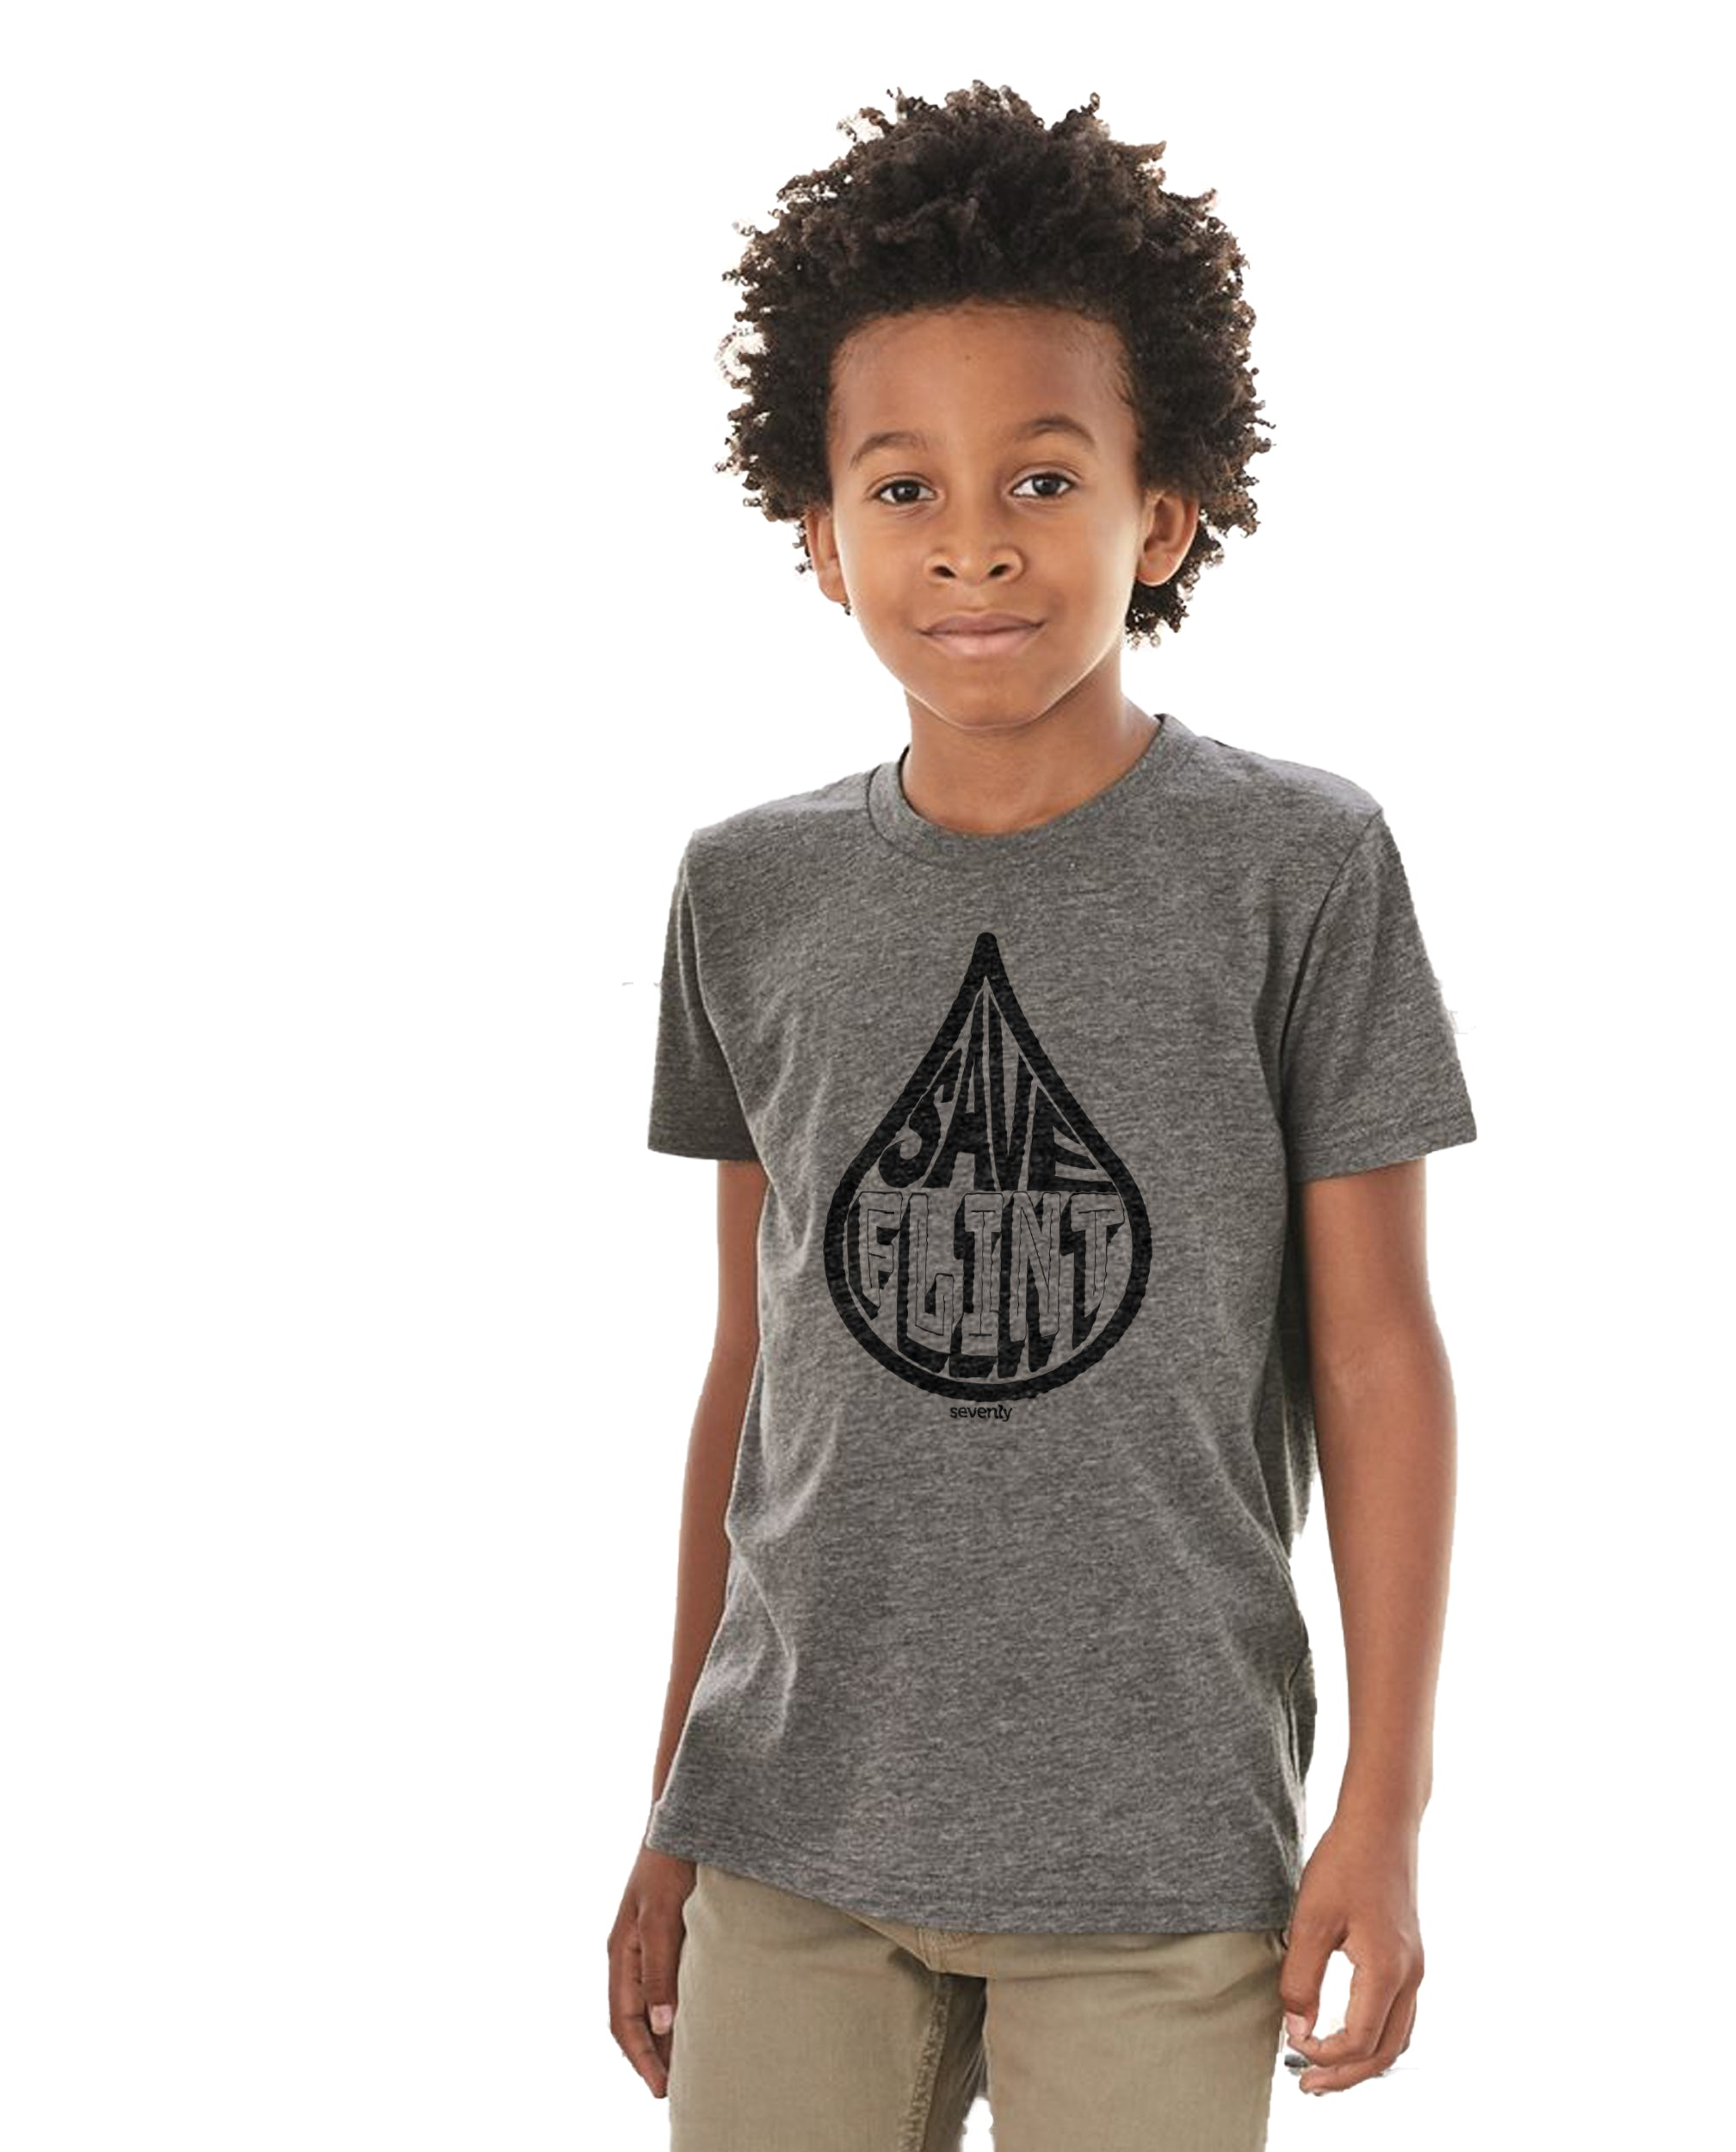 Save Flint Water - Boy's Premium Short Sleeve Crew